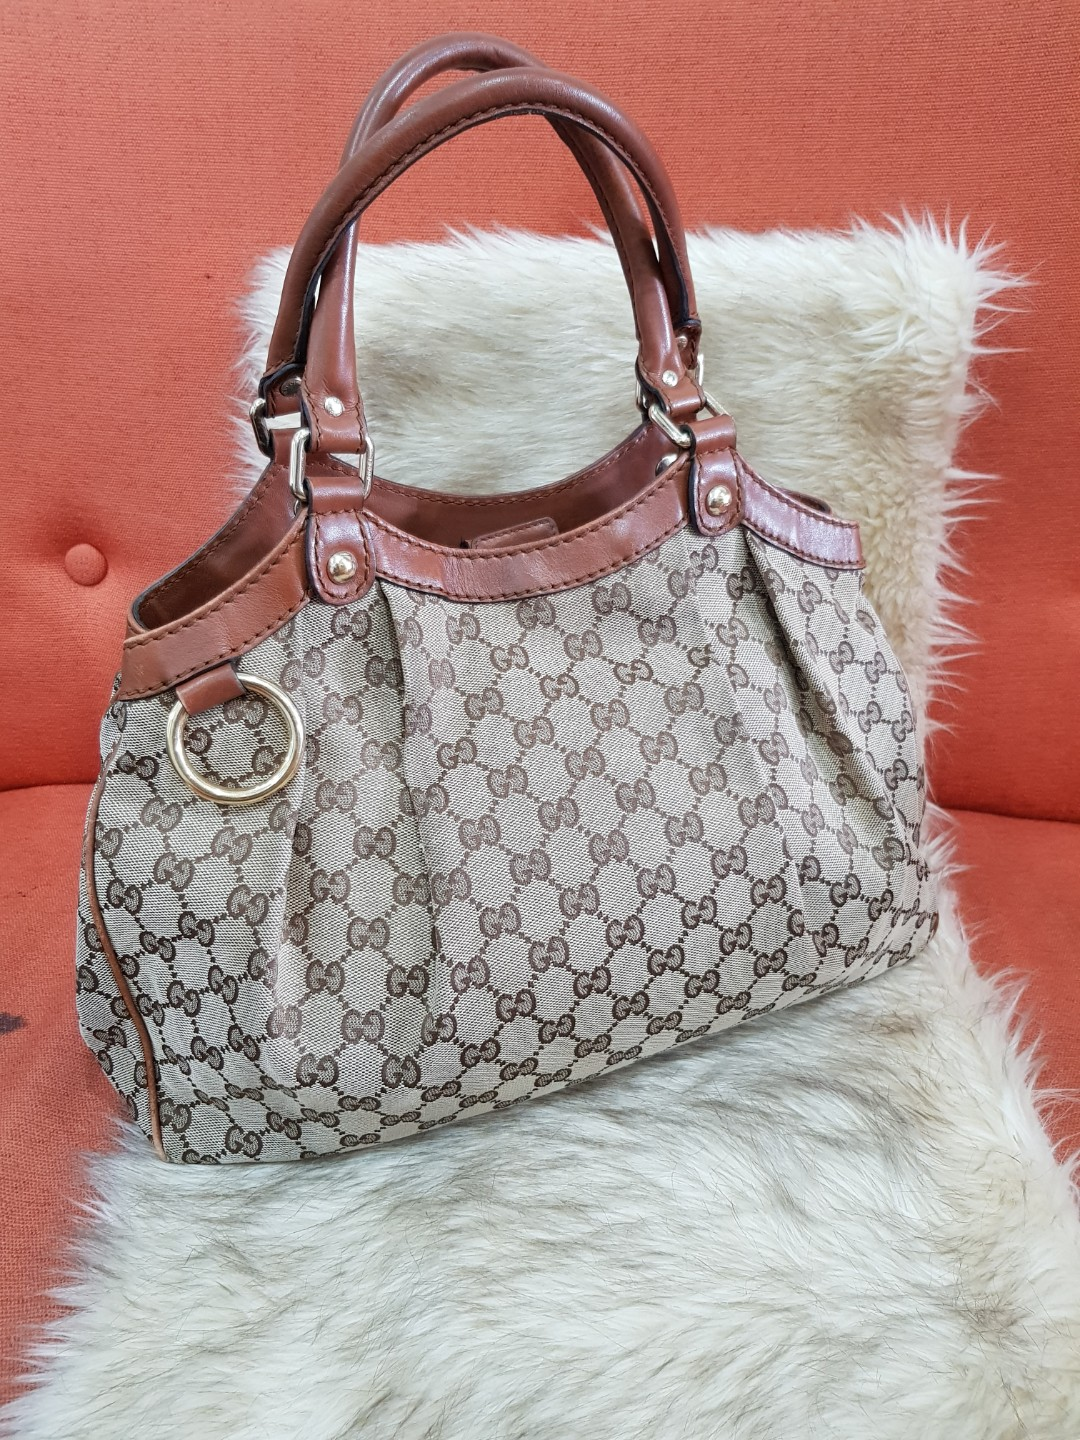 355c9791e05512 Authentic Gucci Large Sukey Tote Brown Bag, Luxury, Bags & Wallets ...